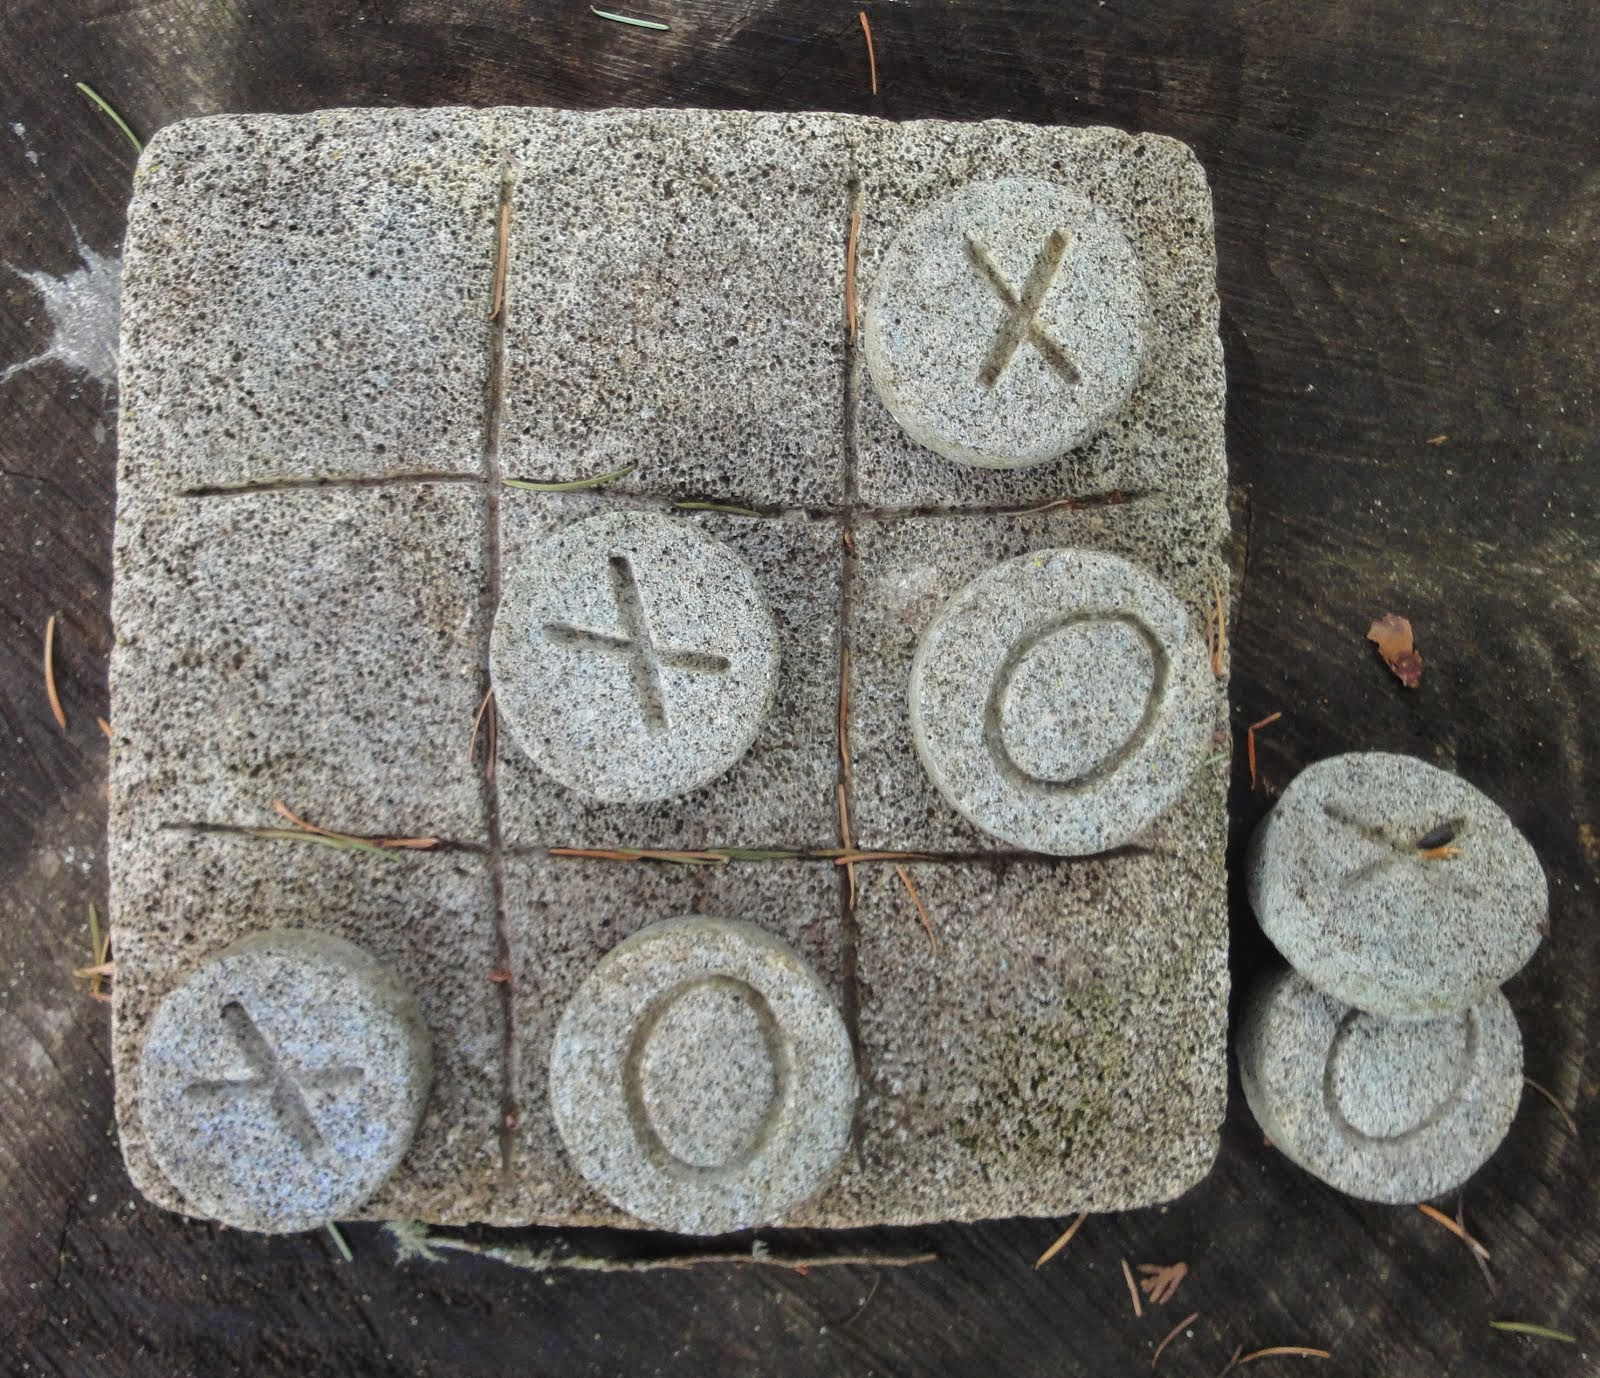 CONCRETE STEPPING STONE OR OUTDOOR CONCRETE TIC-TAC-TOE GAME